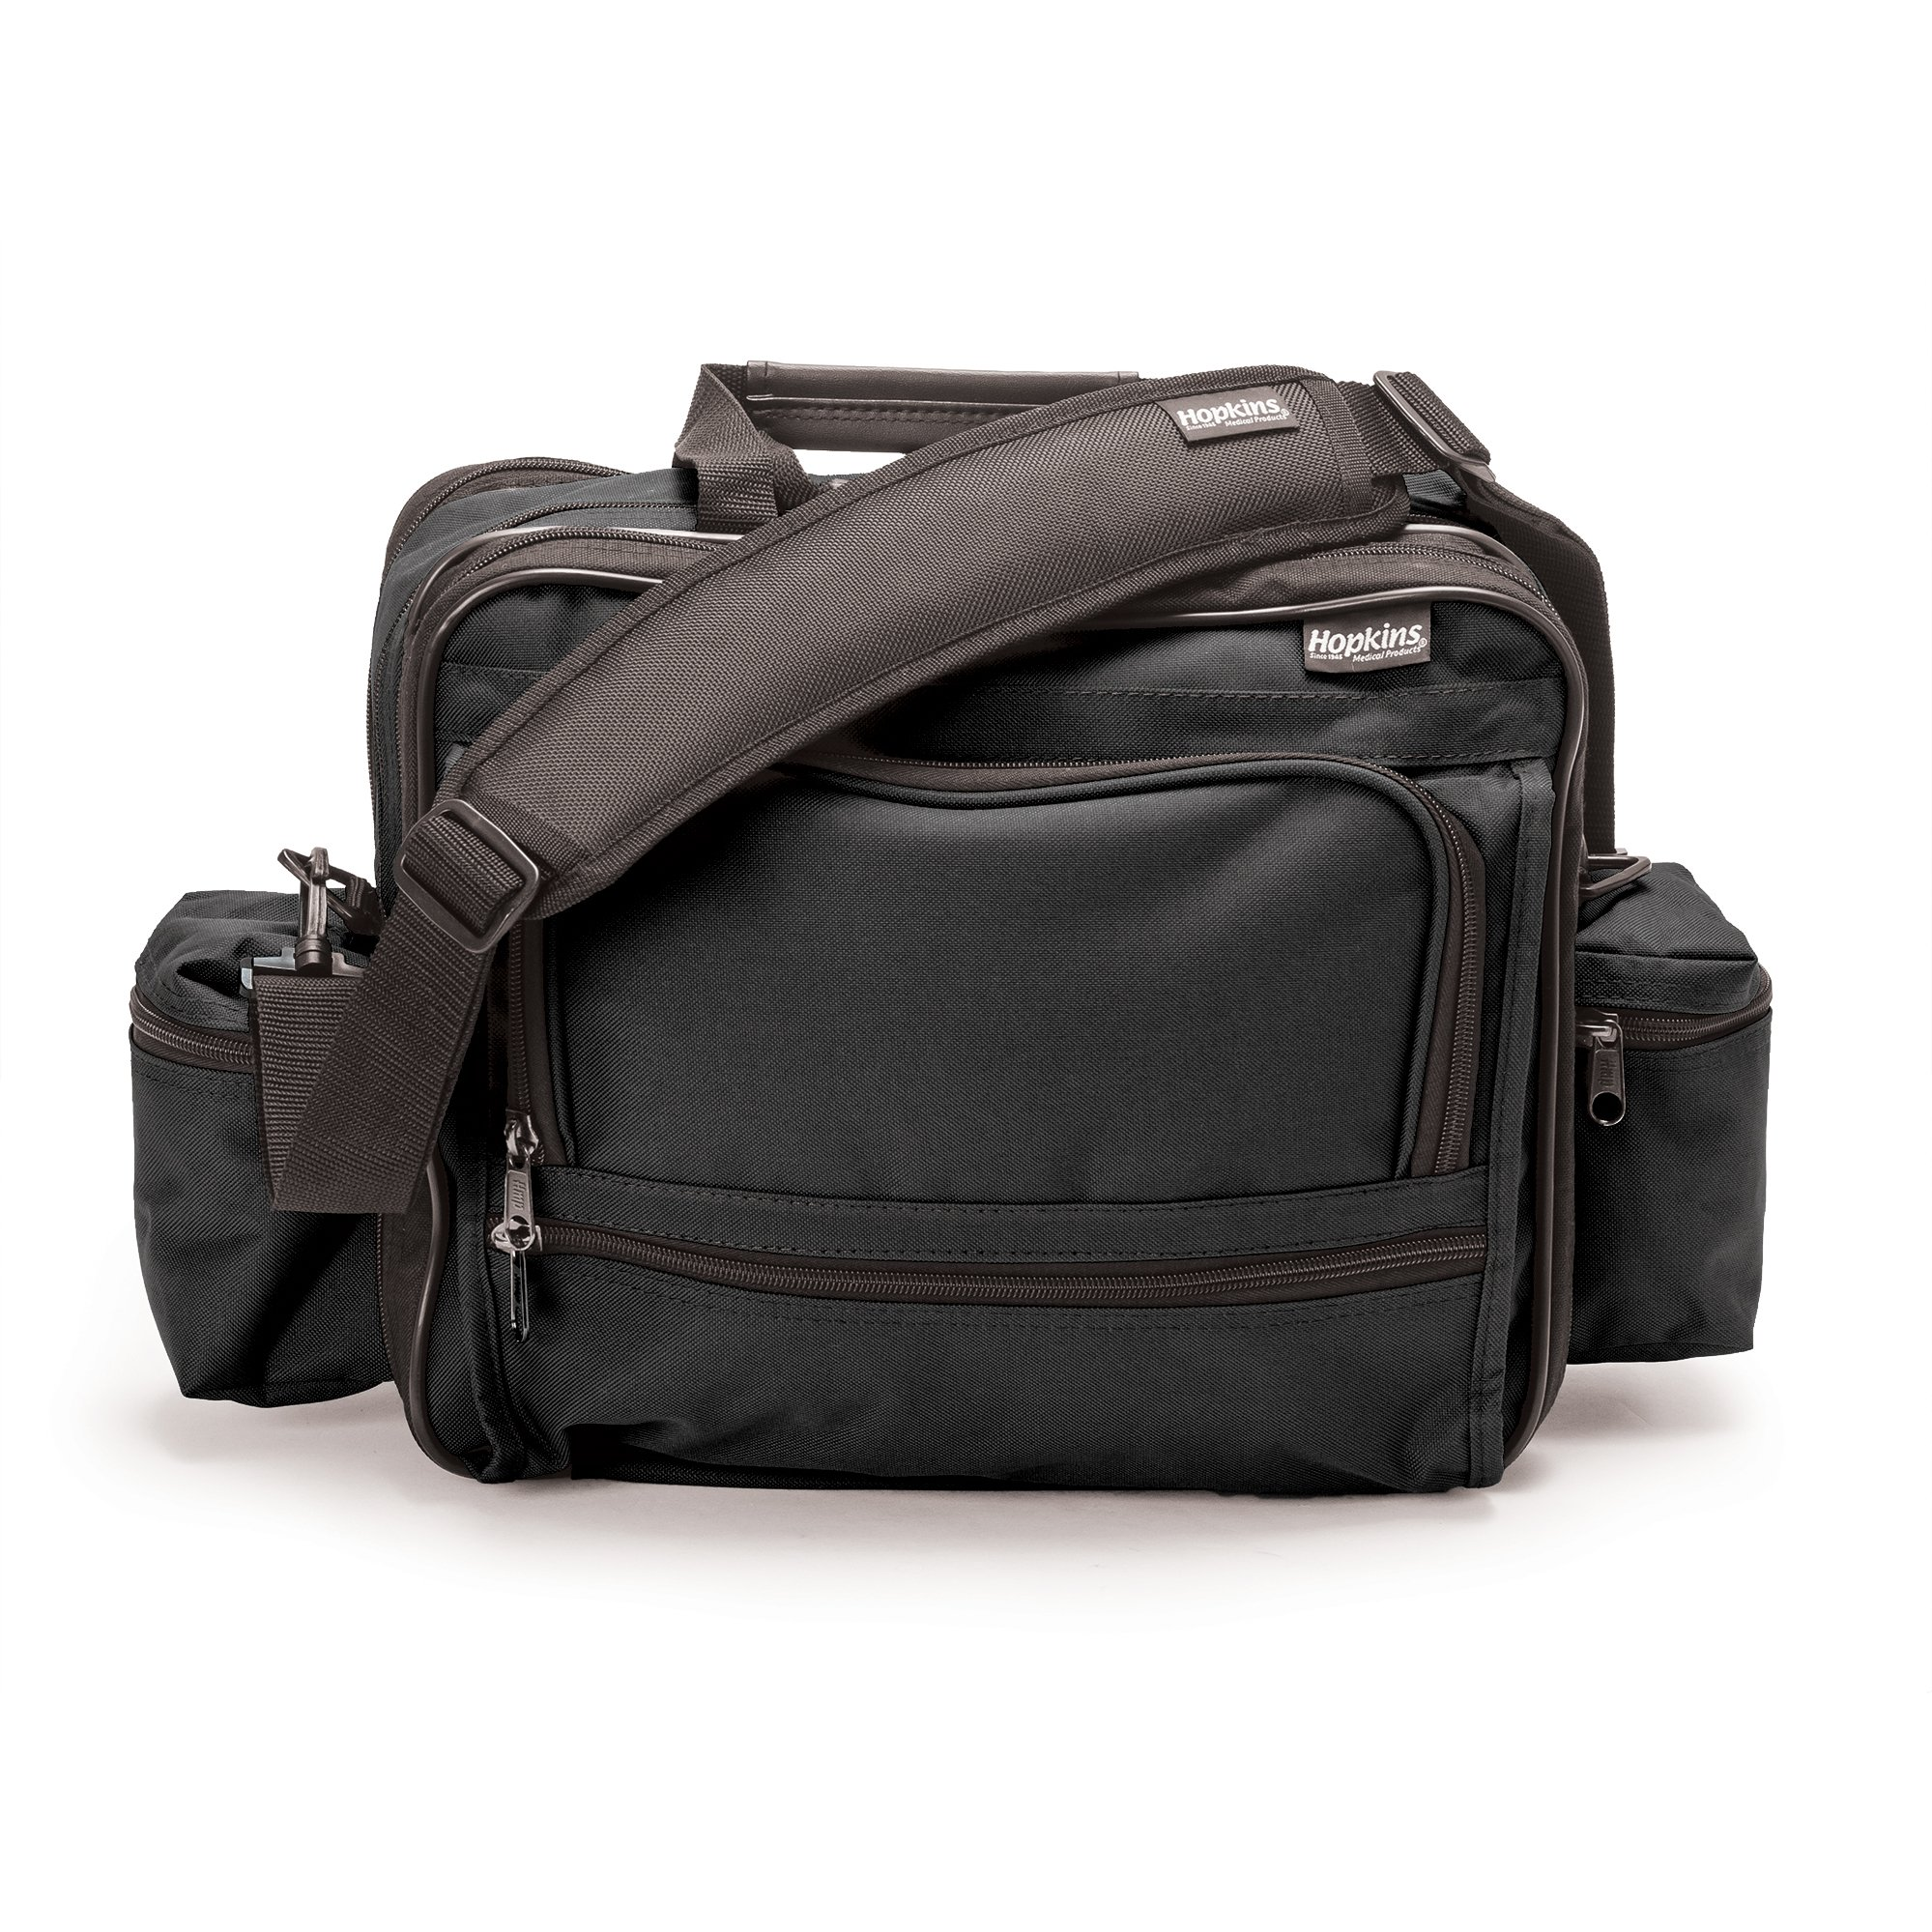 Hopkins Medical Products Mark V Shoulder Bag for Nurses and Home Health Professionals - Black by Hopkins Medical Products (Image #1)